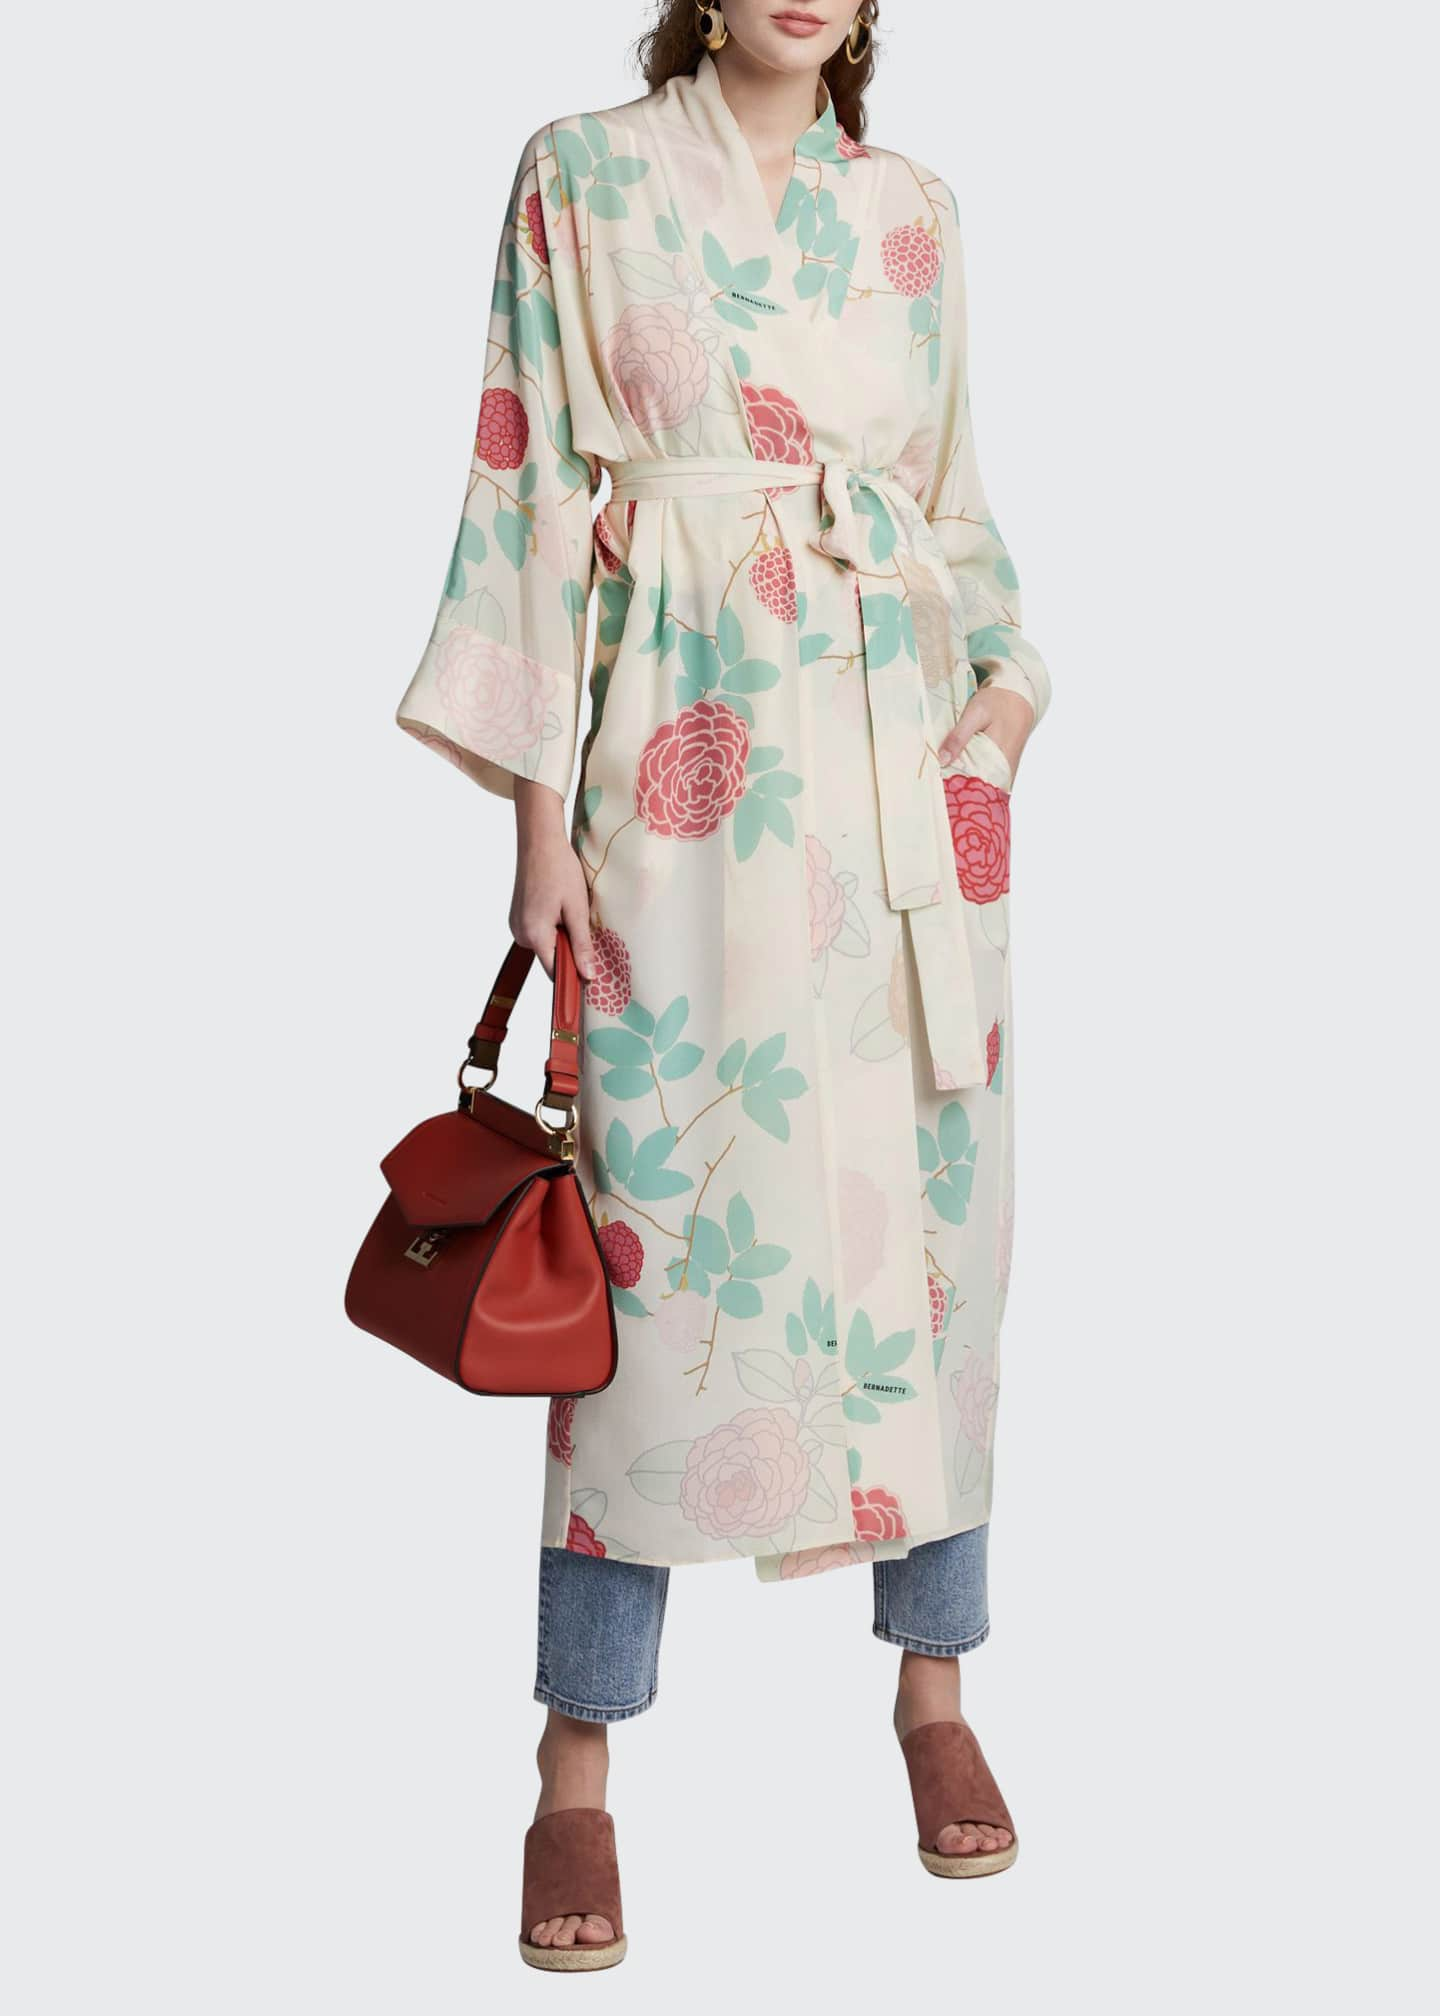 BERNADETTE Floral-Print Crepe de Chine Peignoir Dress